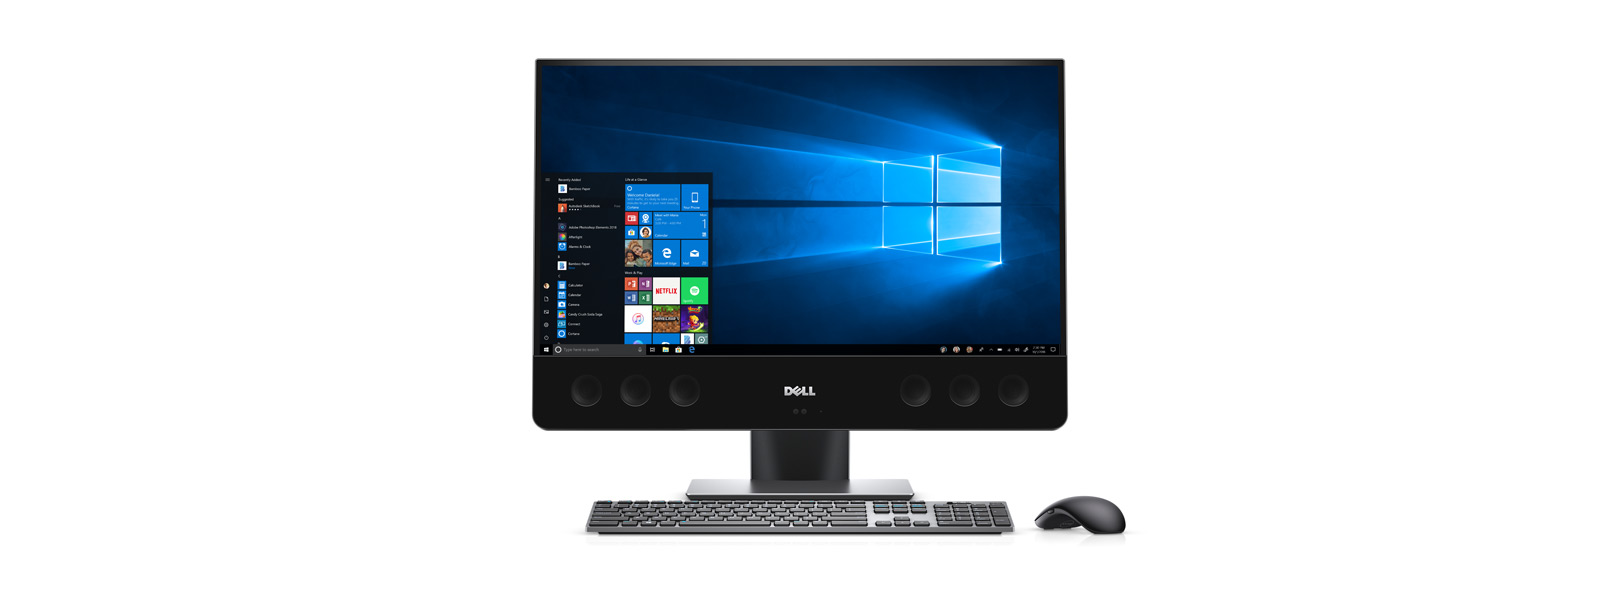 A front angled shot of Dell XPS 27 All-in-One.